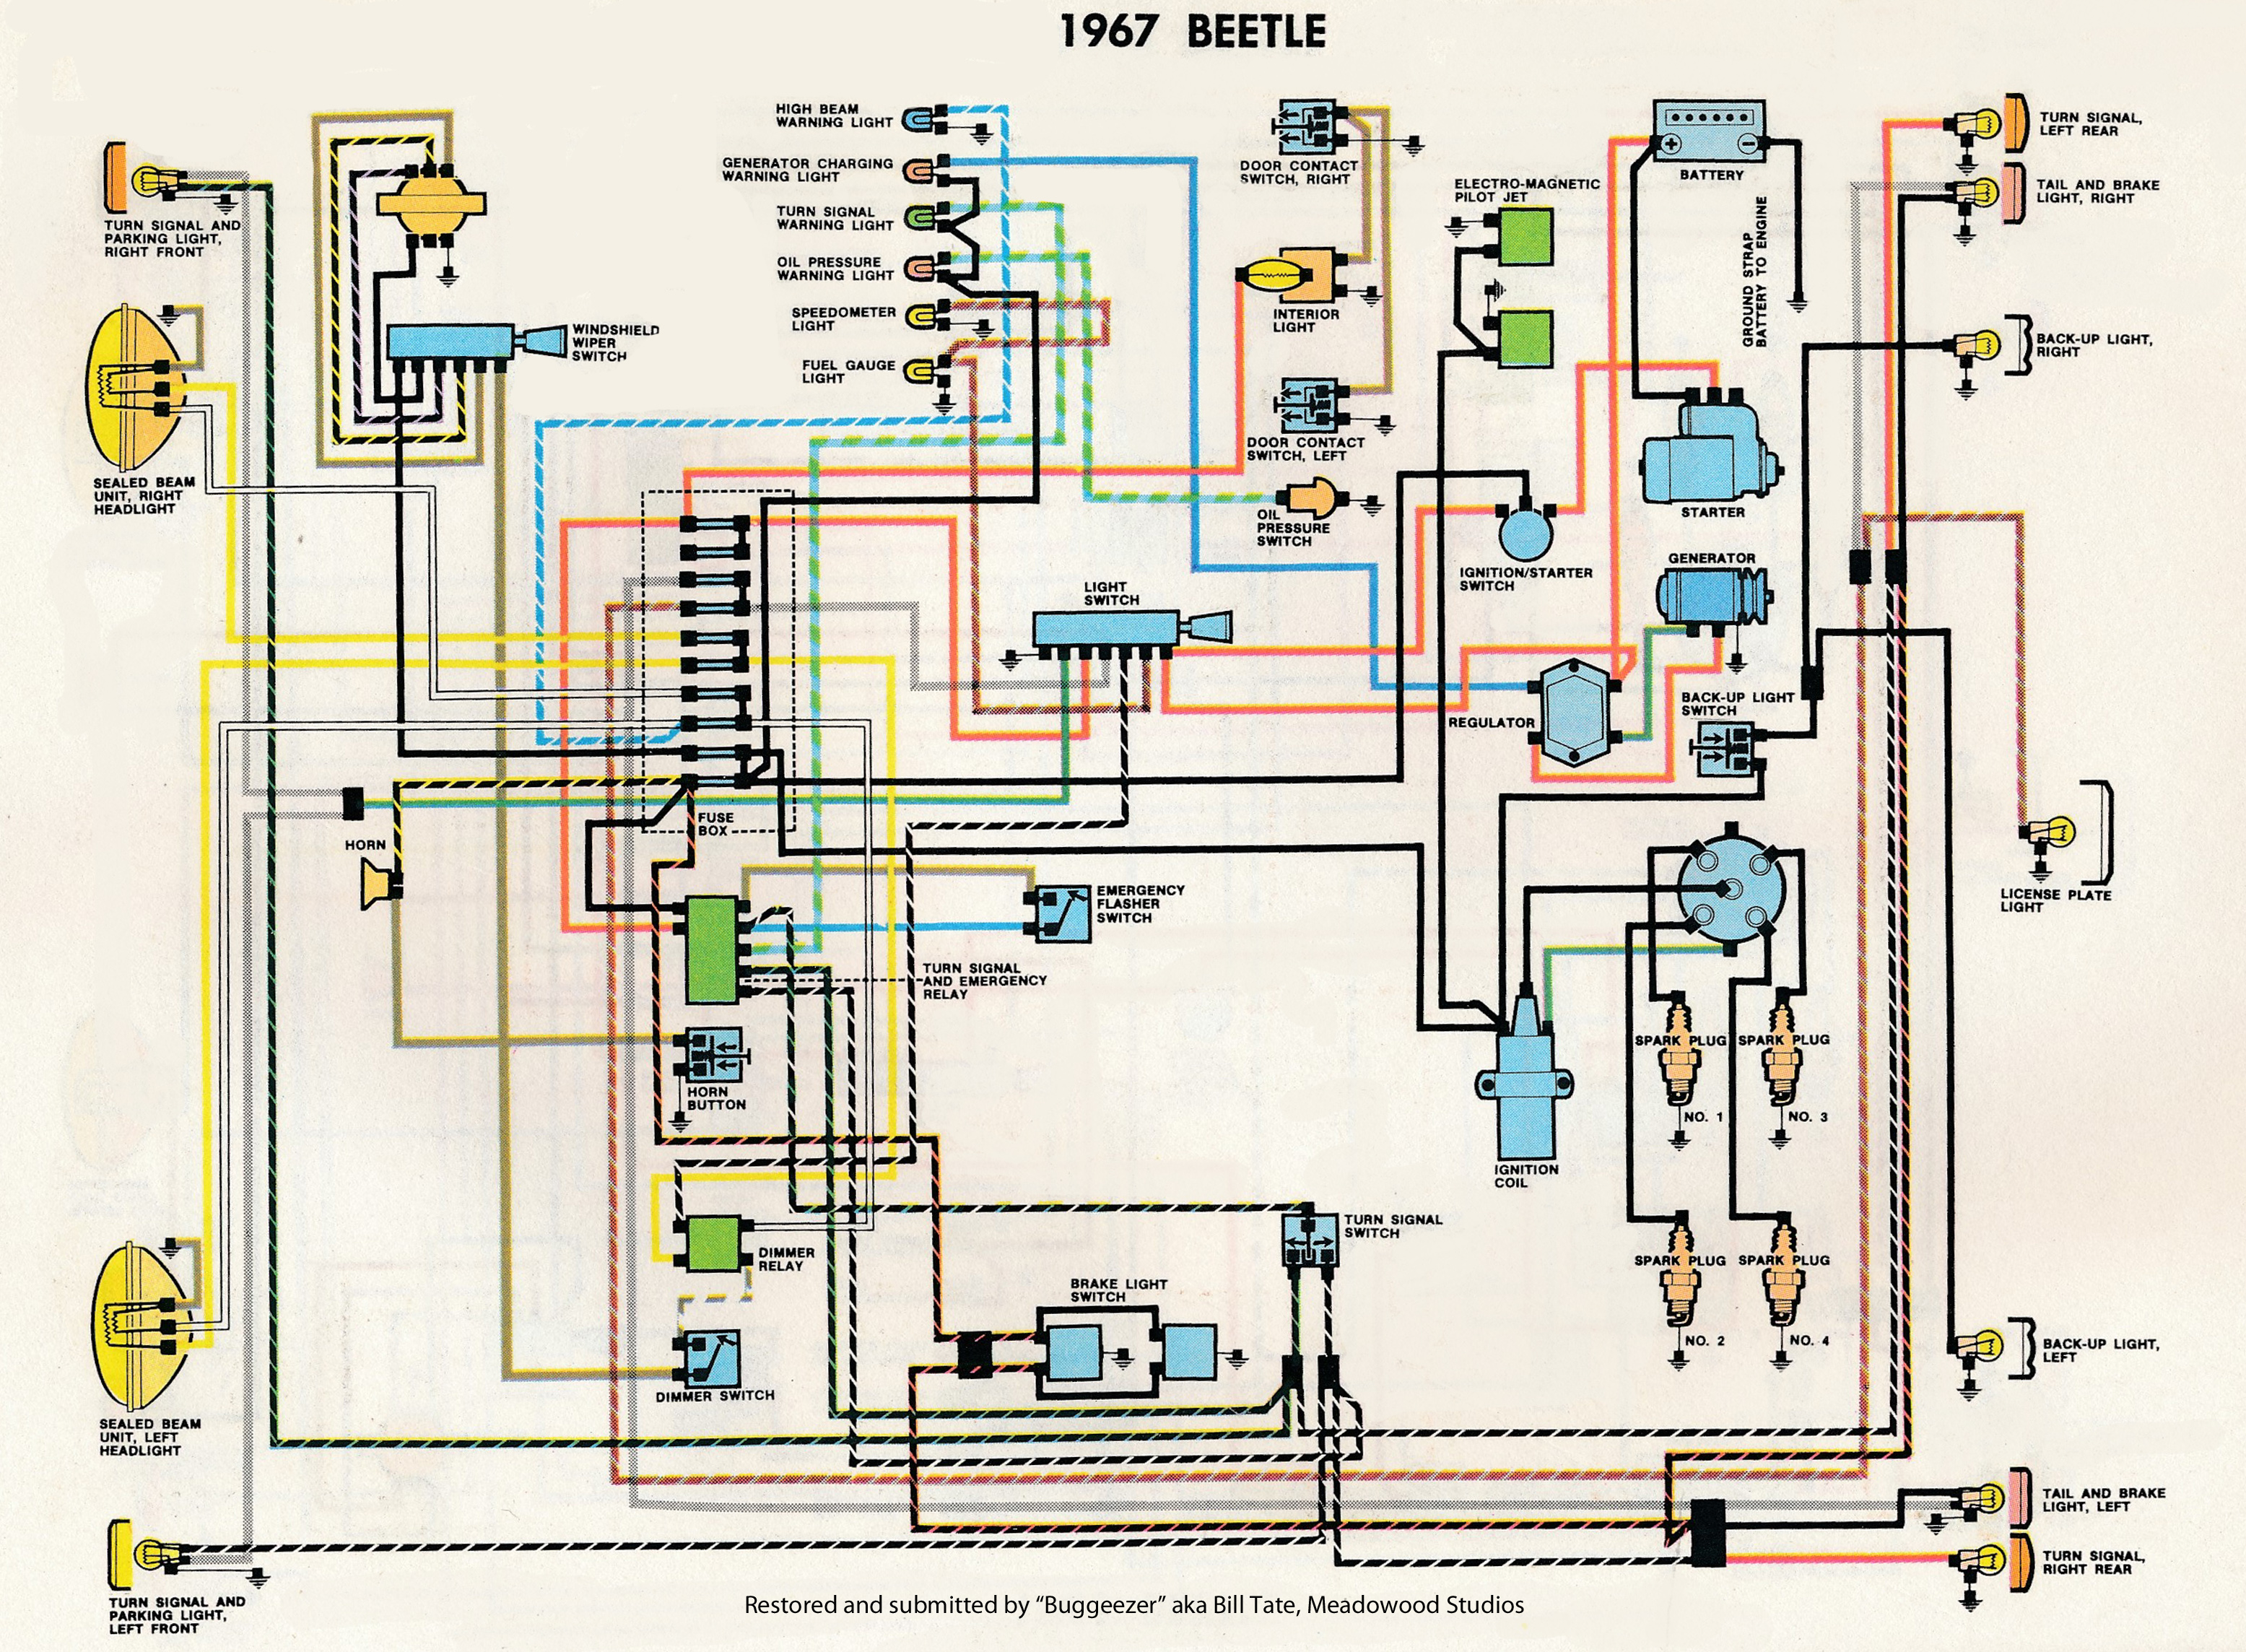 72 Super Beetle Engine Wiring - Wiring Diagrams on